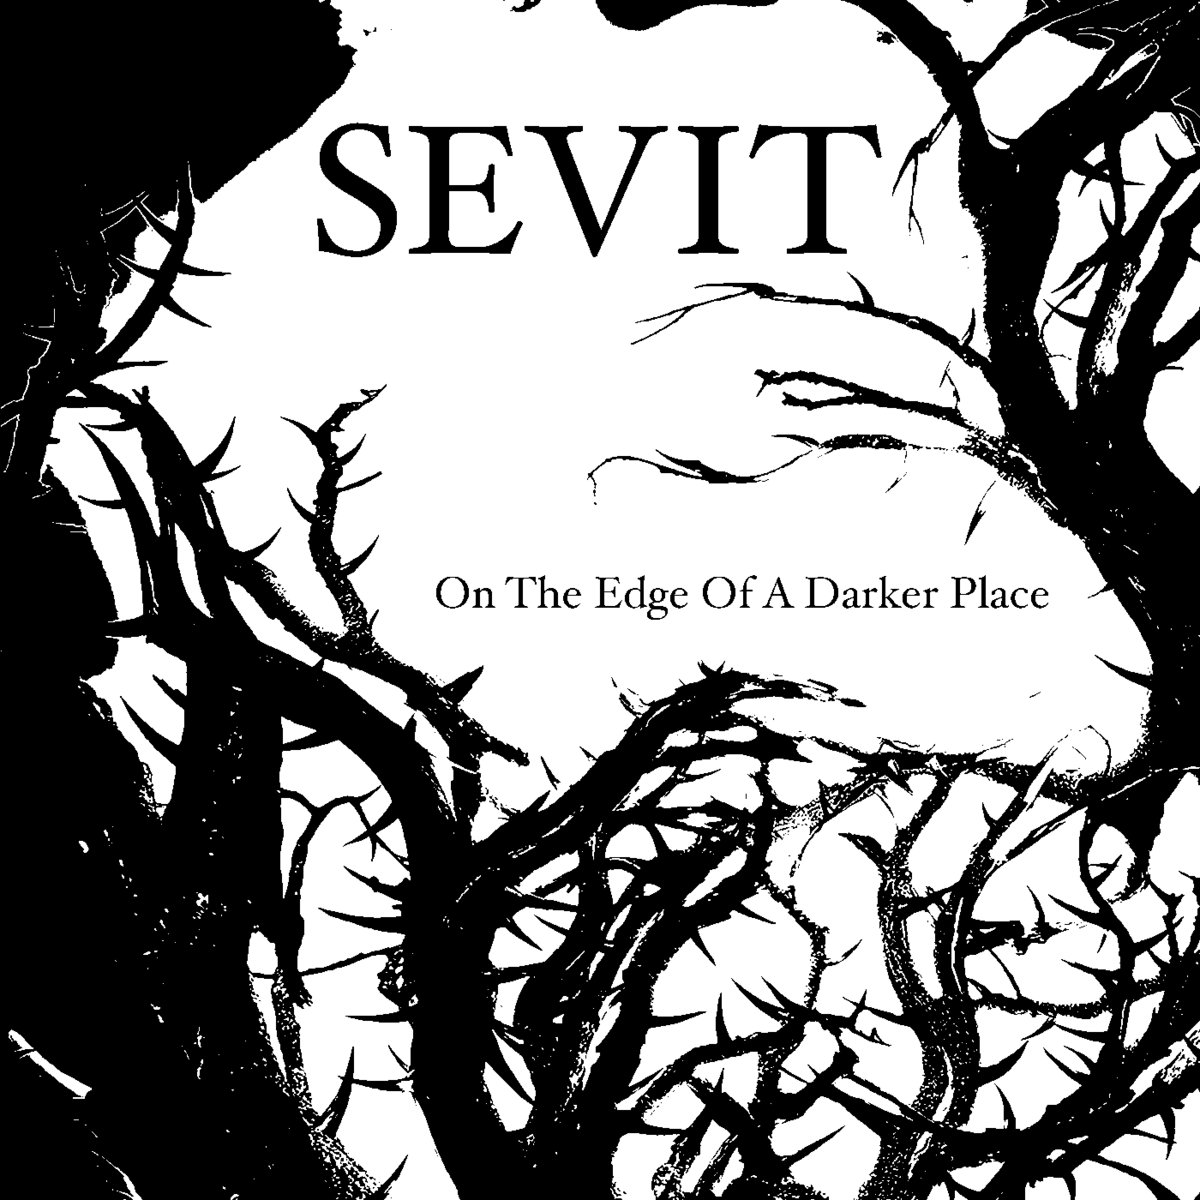 Sevit - On The Edge Of A Darker Place (LP, 2020)